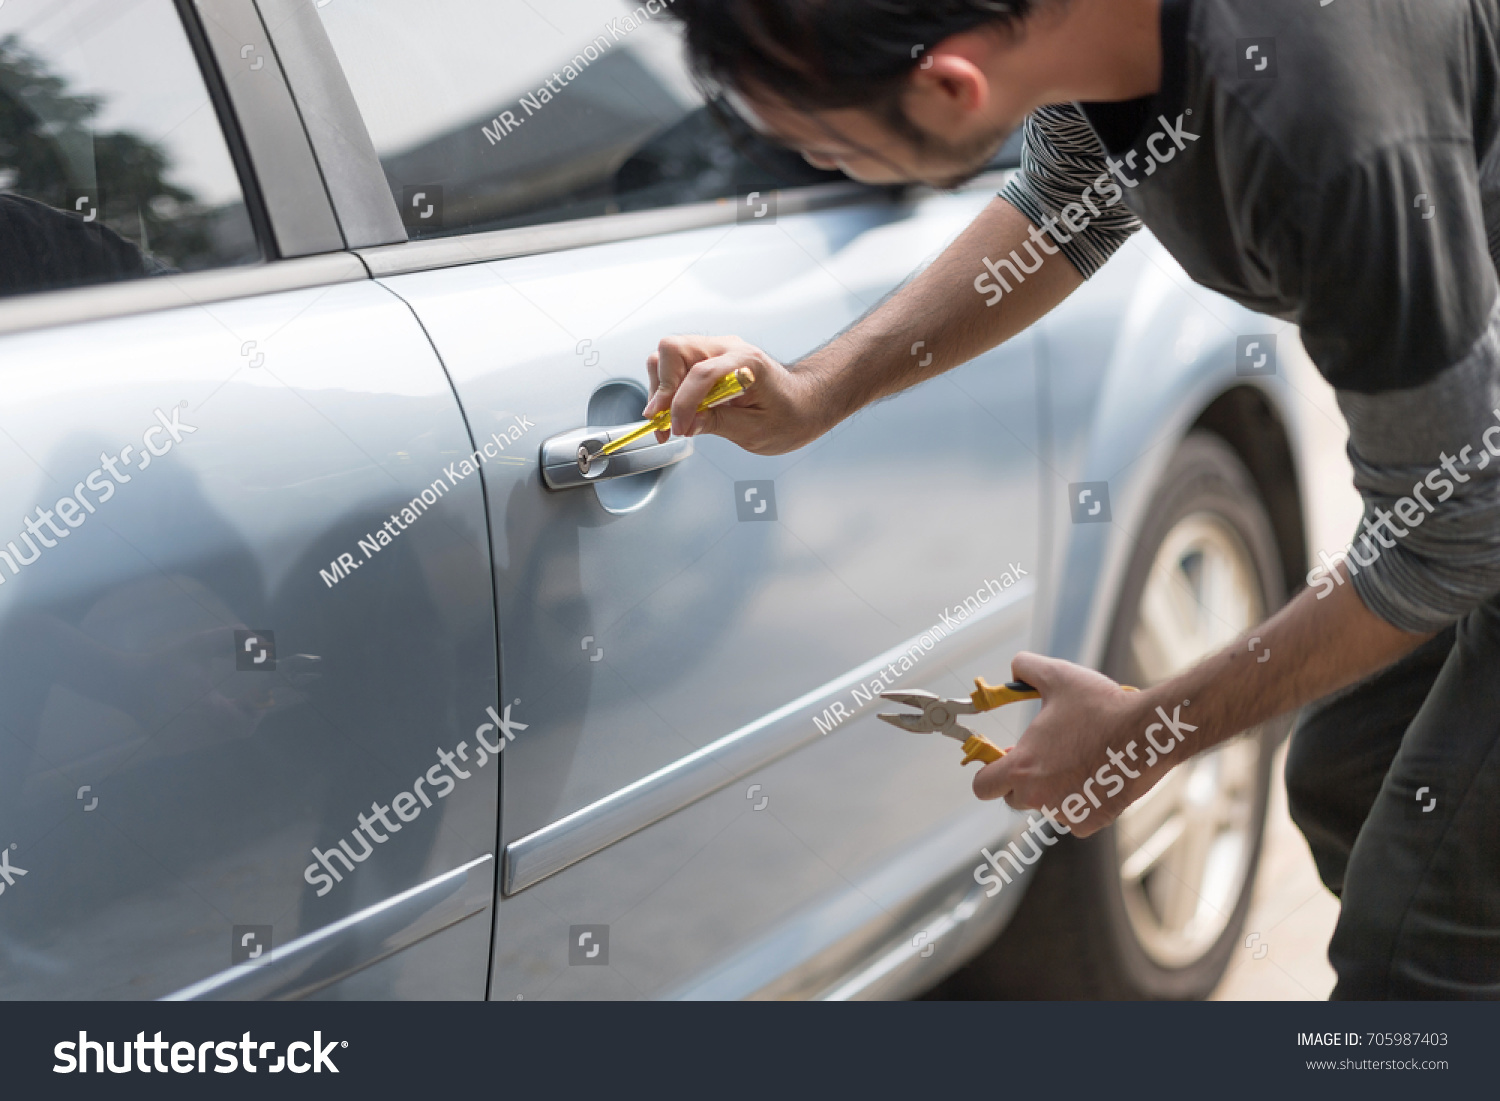 Asian Man Holding Screwdriver Trying Break Stock Photo 705987403 ...